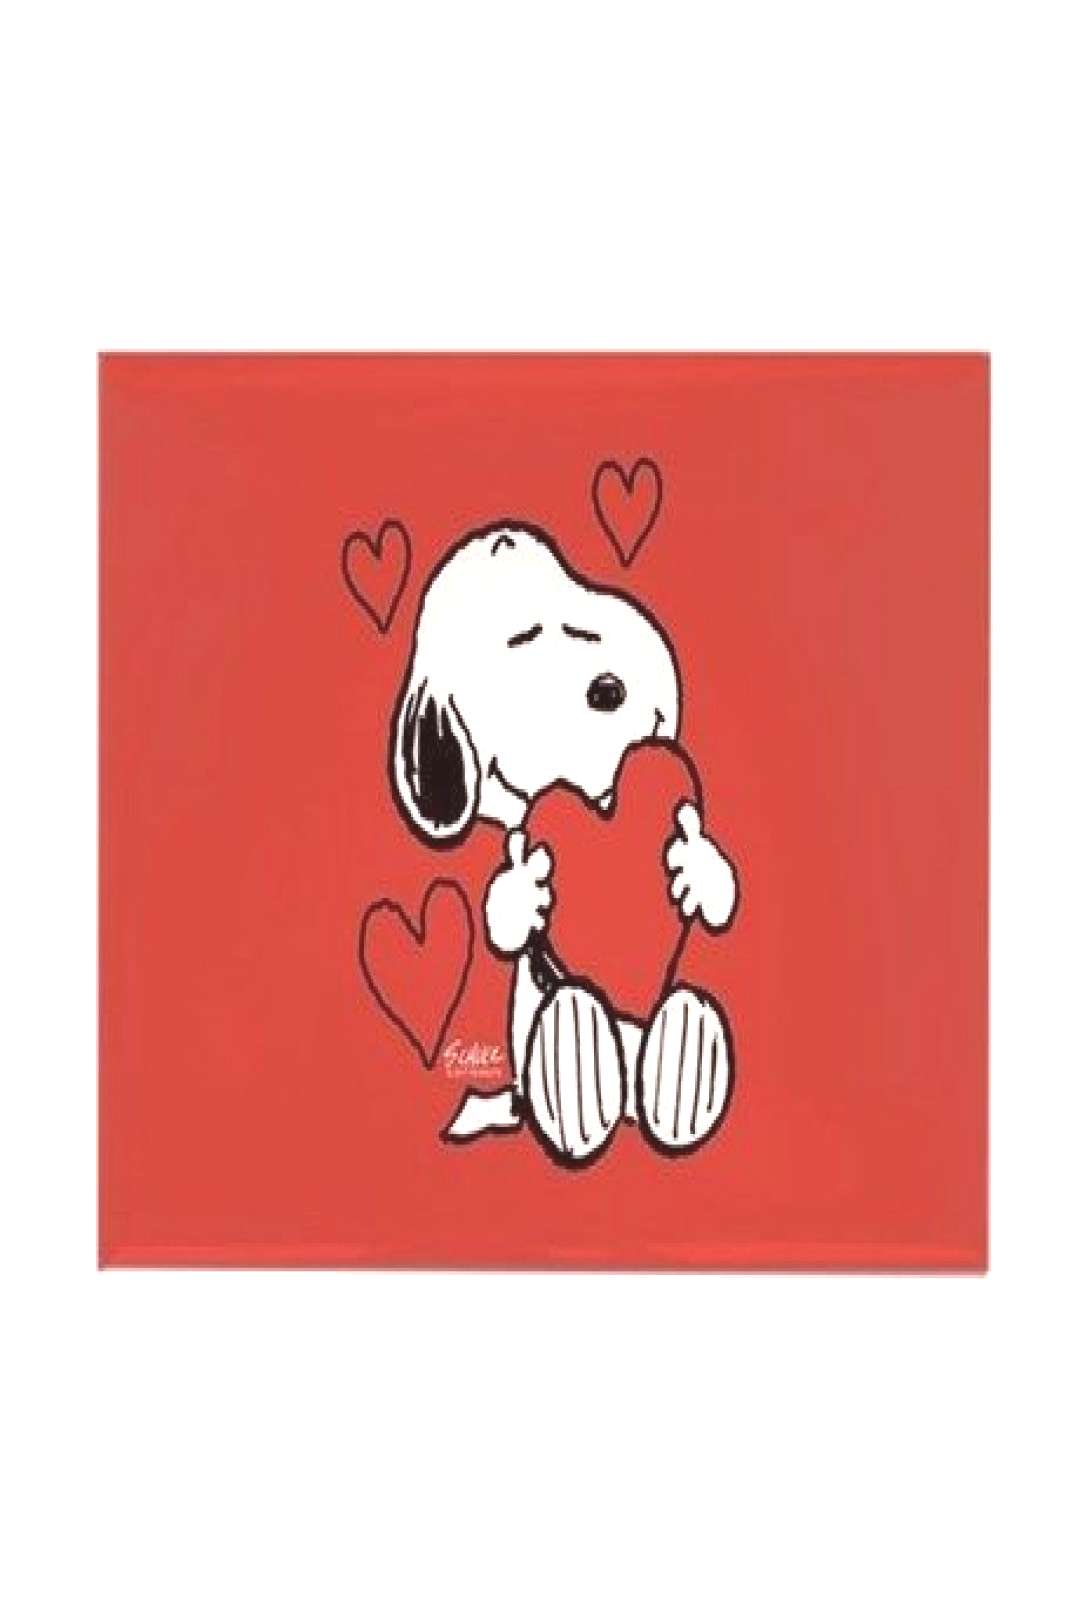 Snoopy Valentine's Day Rectangle Magnet Peanuts: Snoopy Heart Magnets by SnoopyStore - CafePress